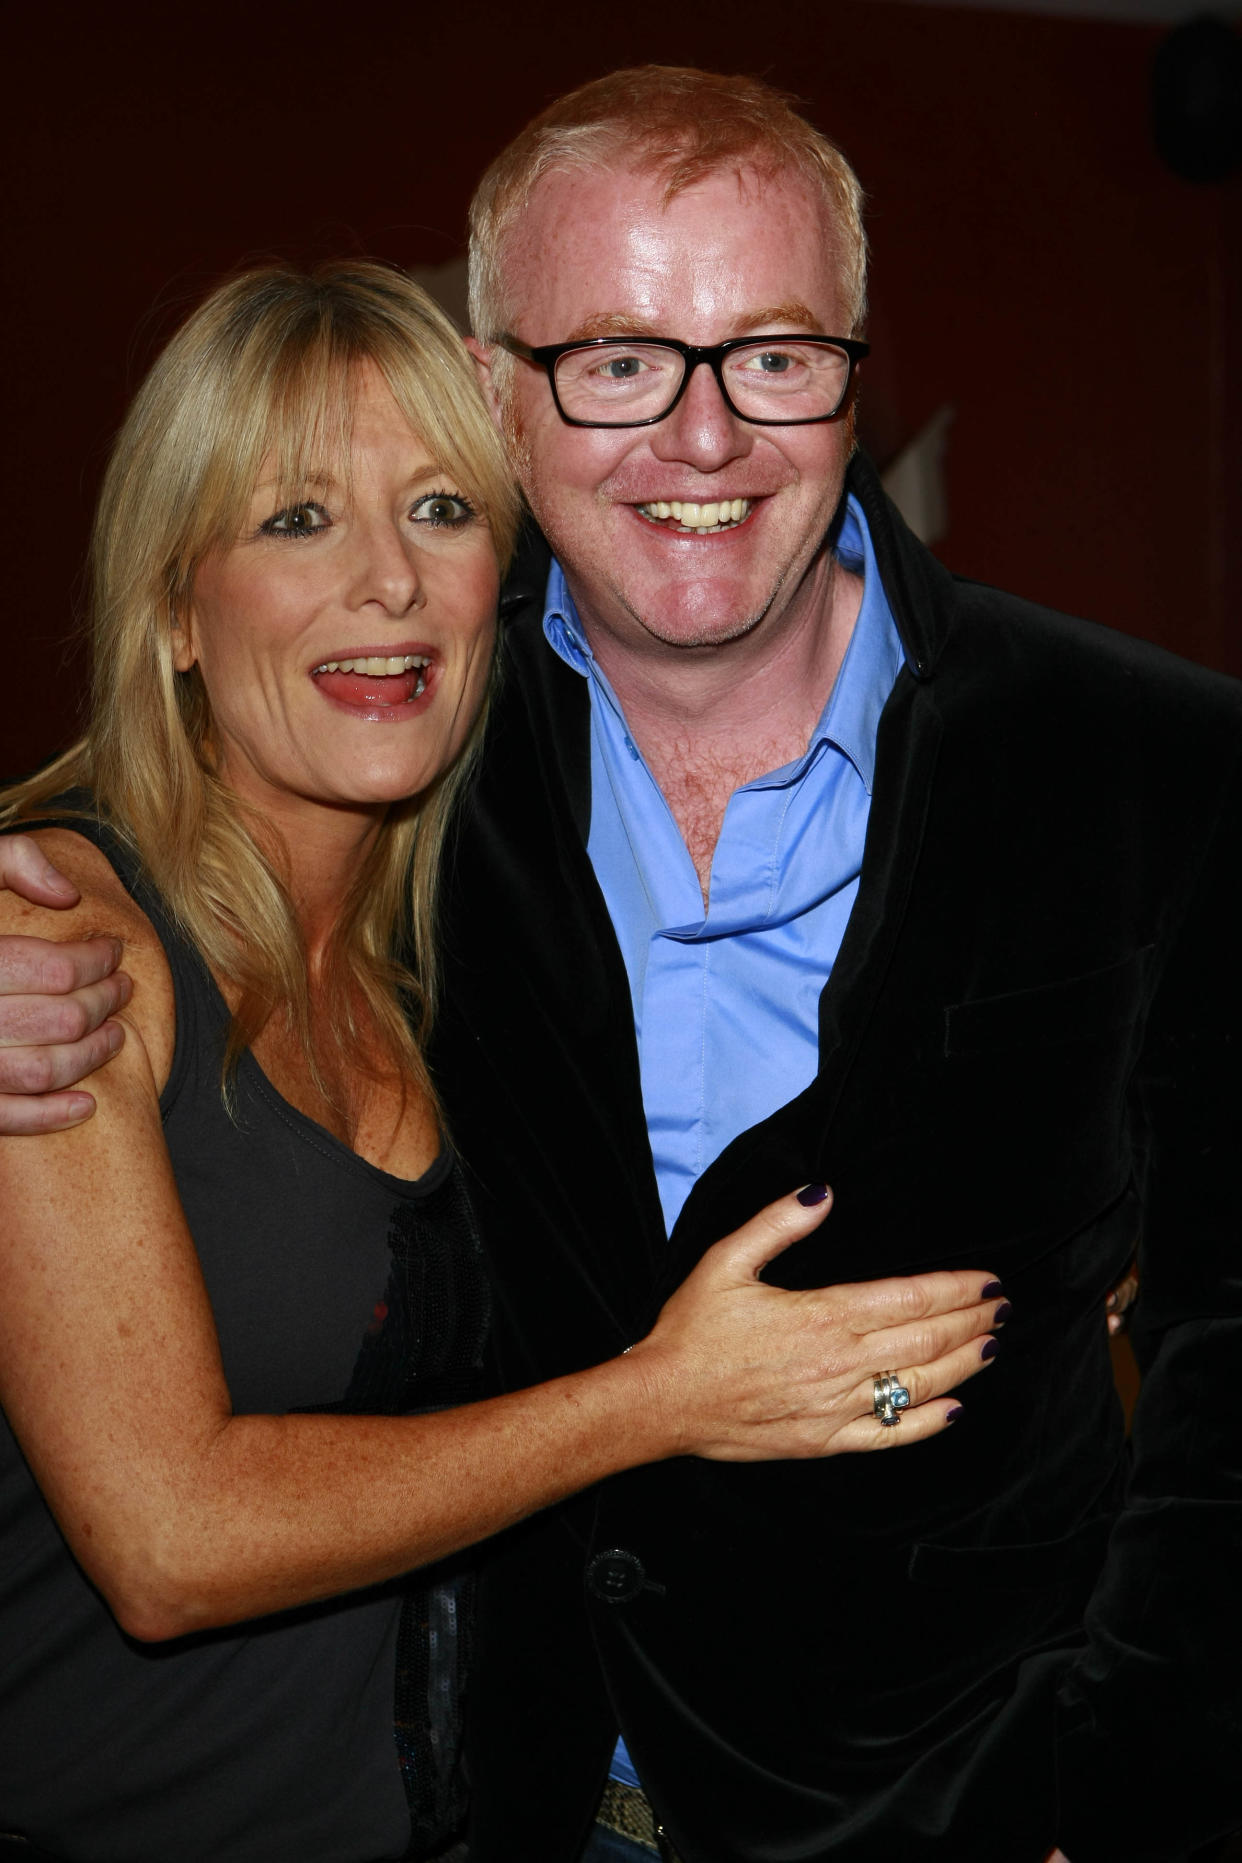 LONDON, ENGLAND - OCTOBER 1: (EMBARGOED FOR PUBLICATION IN UK TABLOID NEWSPAPERS UNTIL 48 HOURS AFTER CREATE DATE AND TIME) Gaby Roslin and Chris Evans attend Chris Evans book launch party, held at the Groucho Club, Soho, on October 1 2009 in London, England.  (Photo by Dave M. Benett/Getty Images)